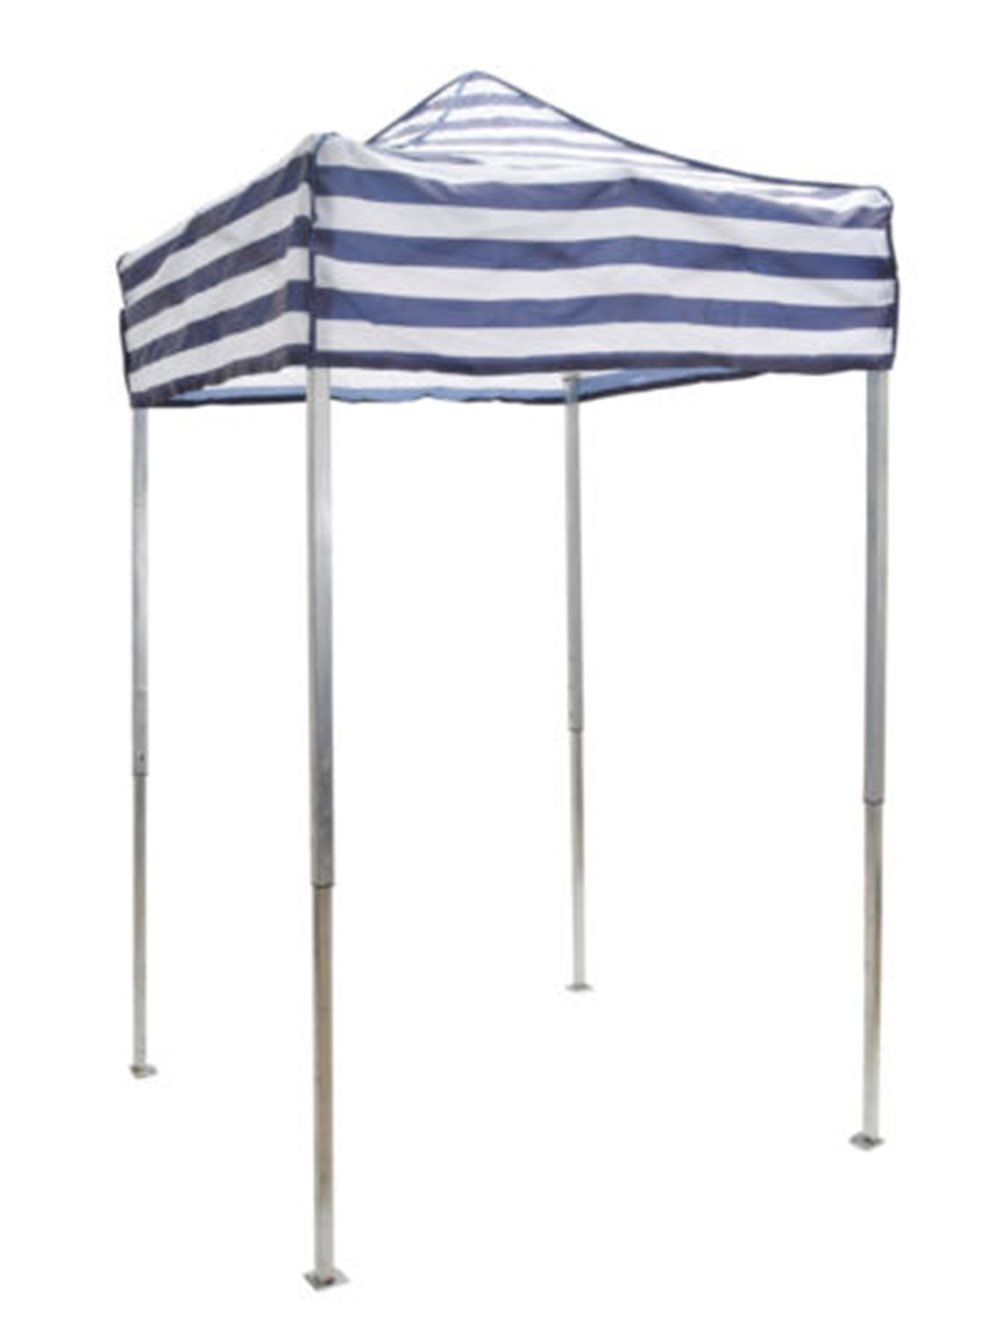 Tent Changing Room Camping Cabana Outdoor Pop Up Canopy Portable Blue Stripe by PTY-Shop-ForU (Image #7)